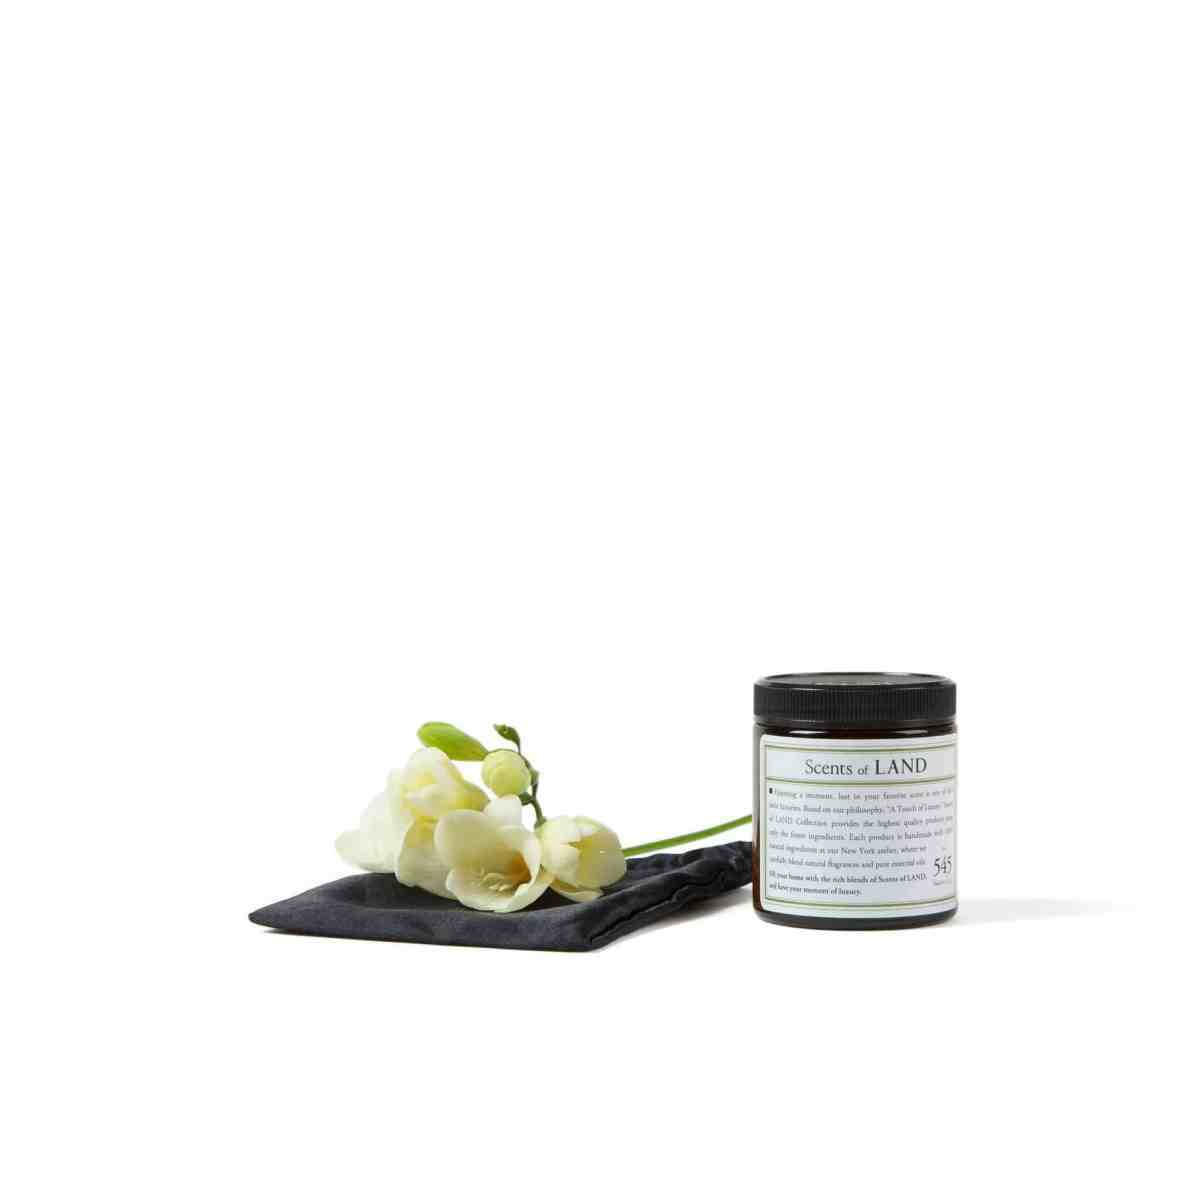 Land-by-land-scent-of-land-candle-small-001